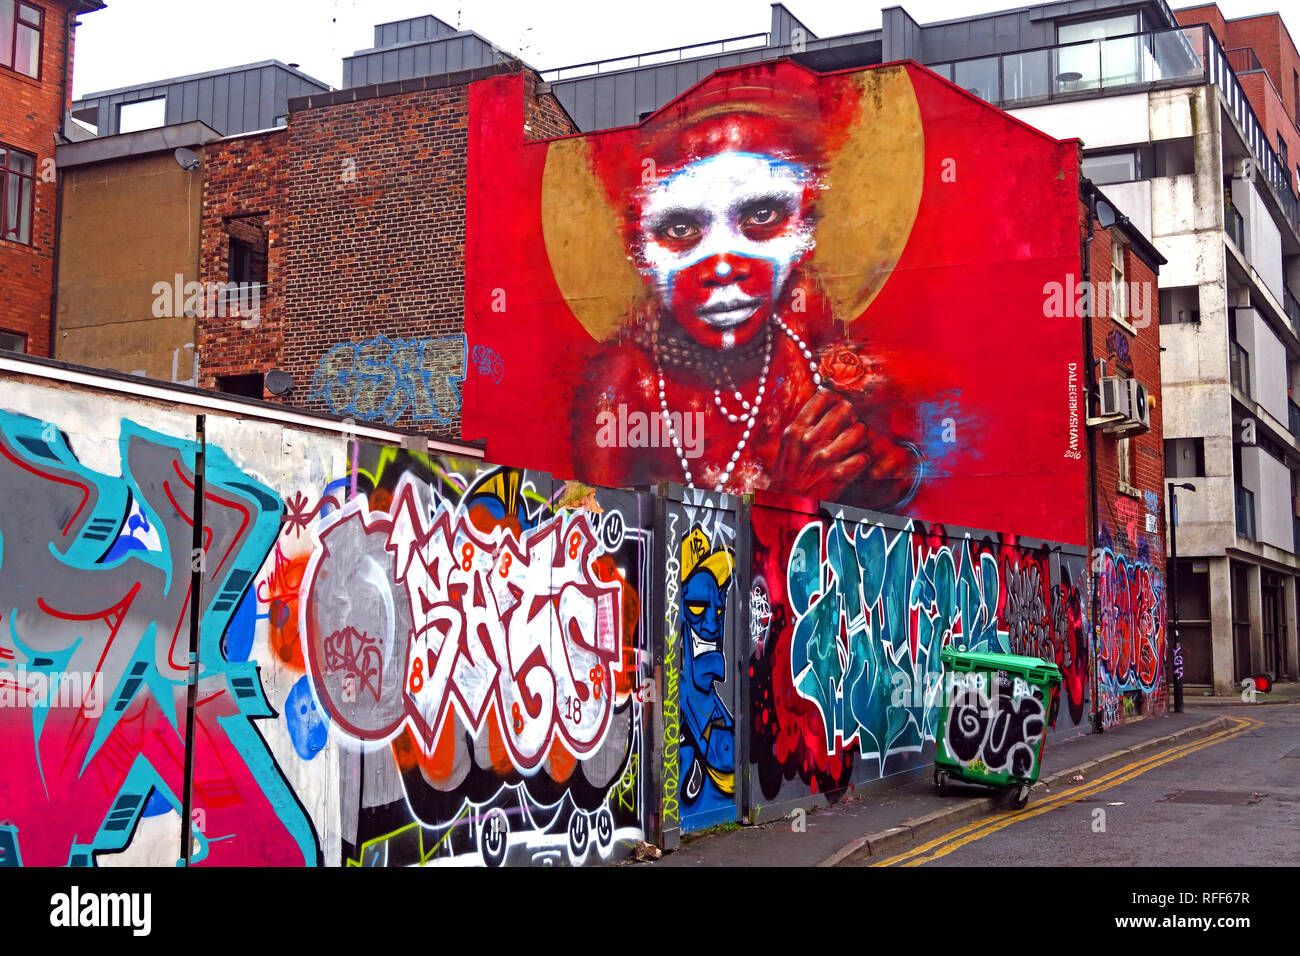 Aboriginal face on red background of graffiti, Spear St, Northern Quarter, Manchester, England, UK Stock Photo